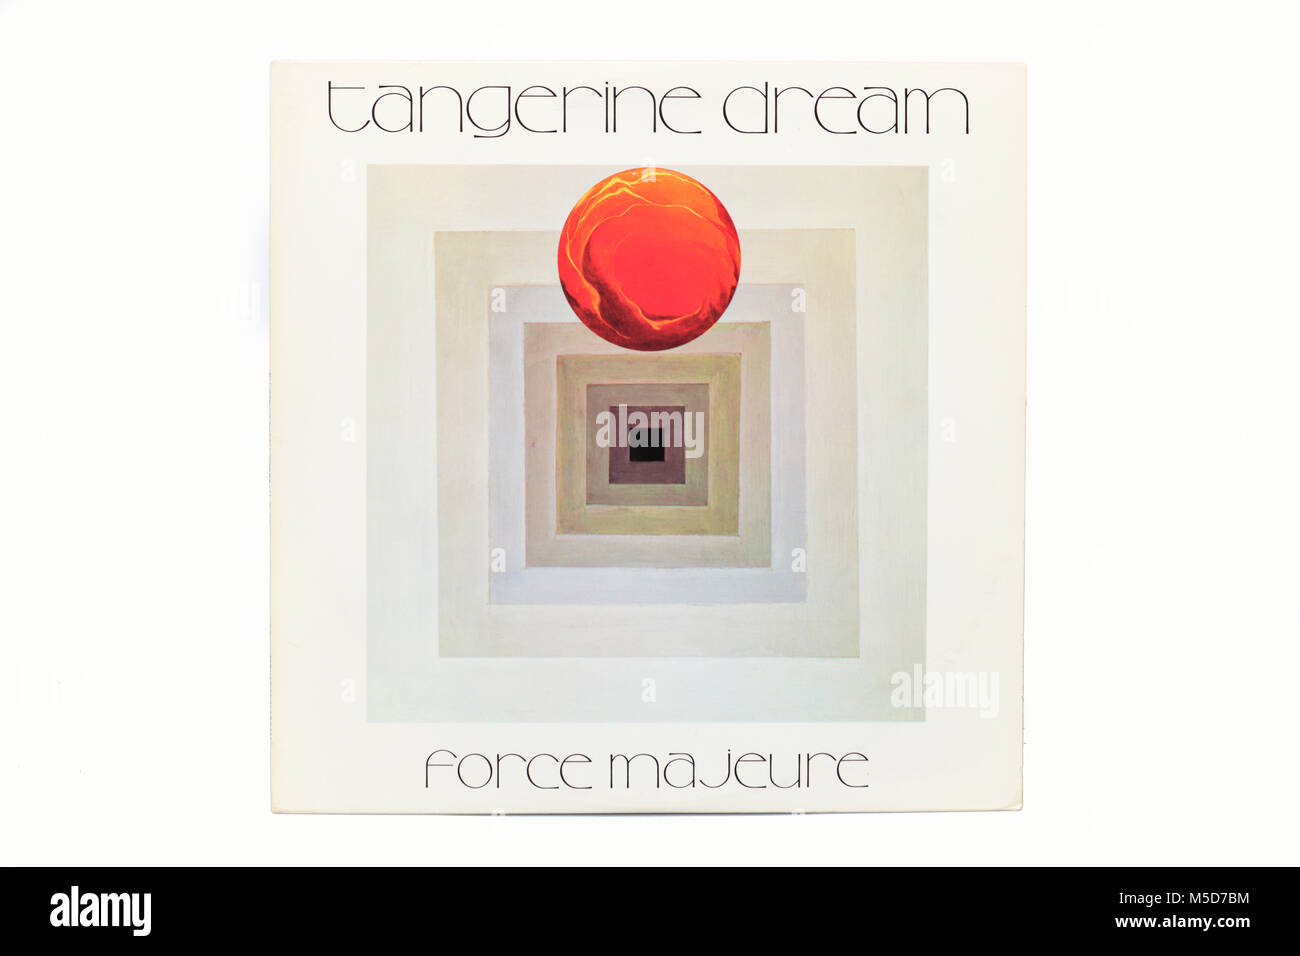 Tangerine Dream Force Majeure LP music vinyl album cover art